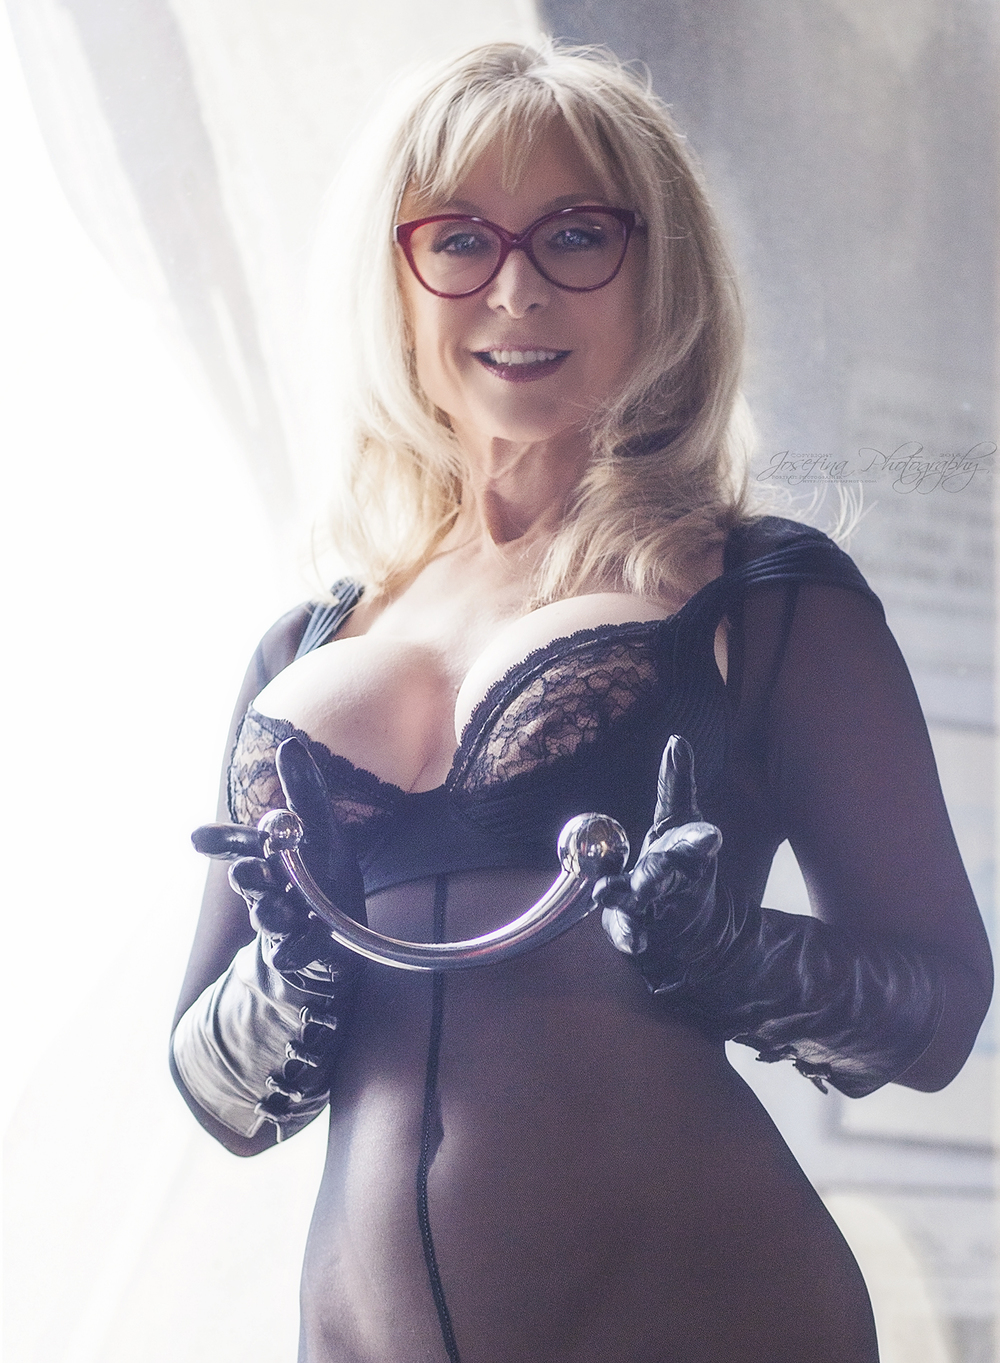 M: Nina Hartley | Glasses: Cutler & Gross | Bodysuit: WinterFetish.com | Bra: Wolford Fashion | Gloves: Bergdorfs | Copyright © Josefina Photography 2016